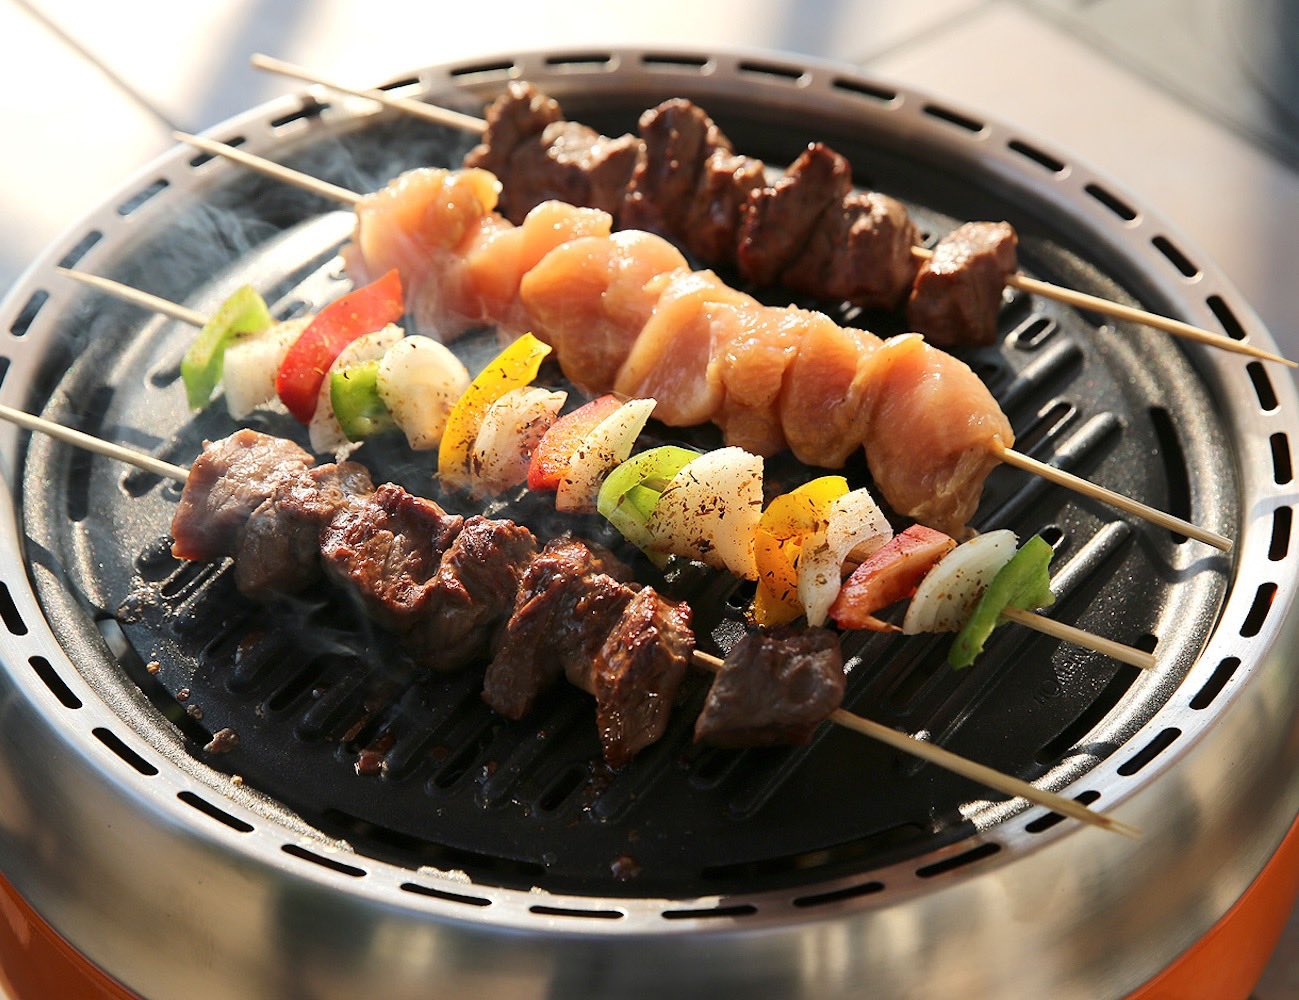 Homping Grill – Ultimate Portable Charcoal BBQ Grill